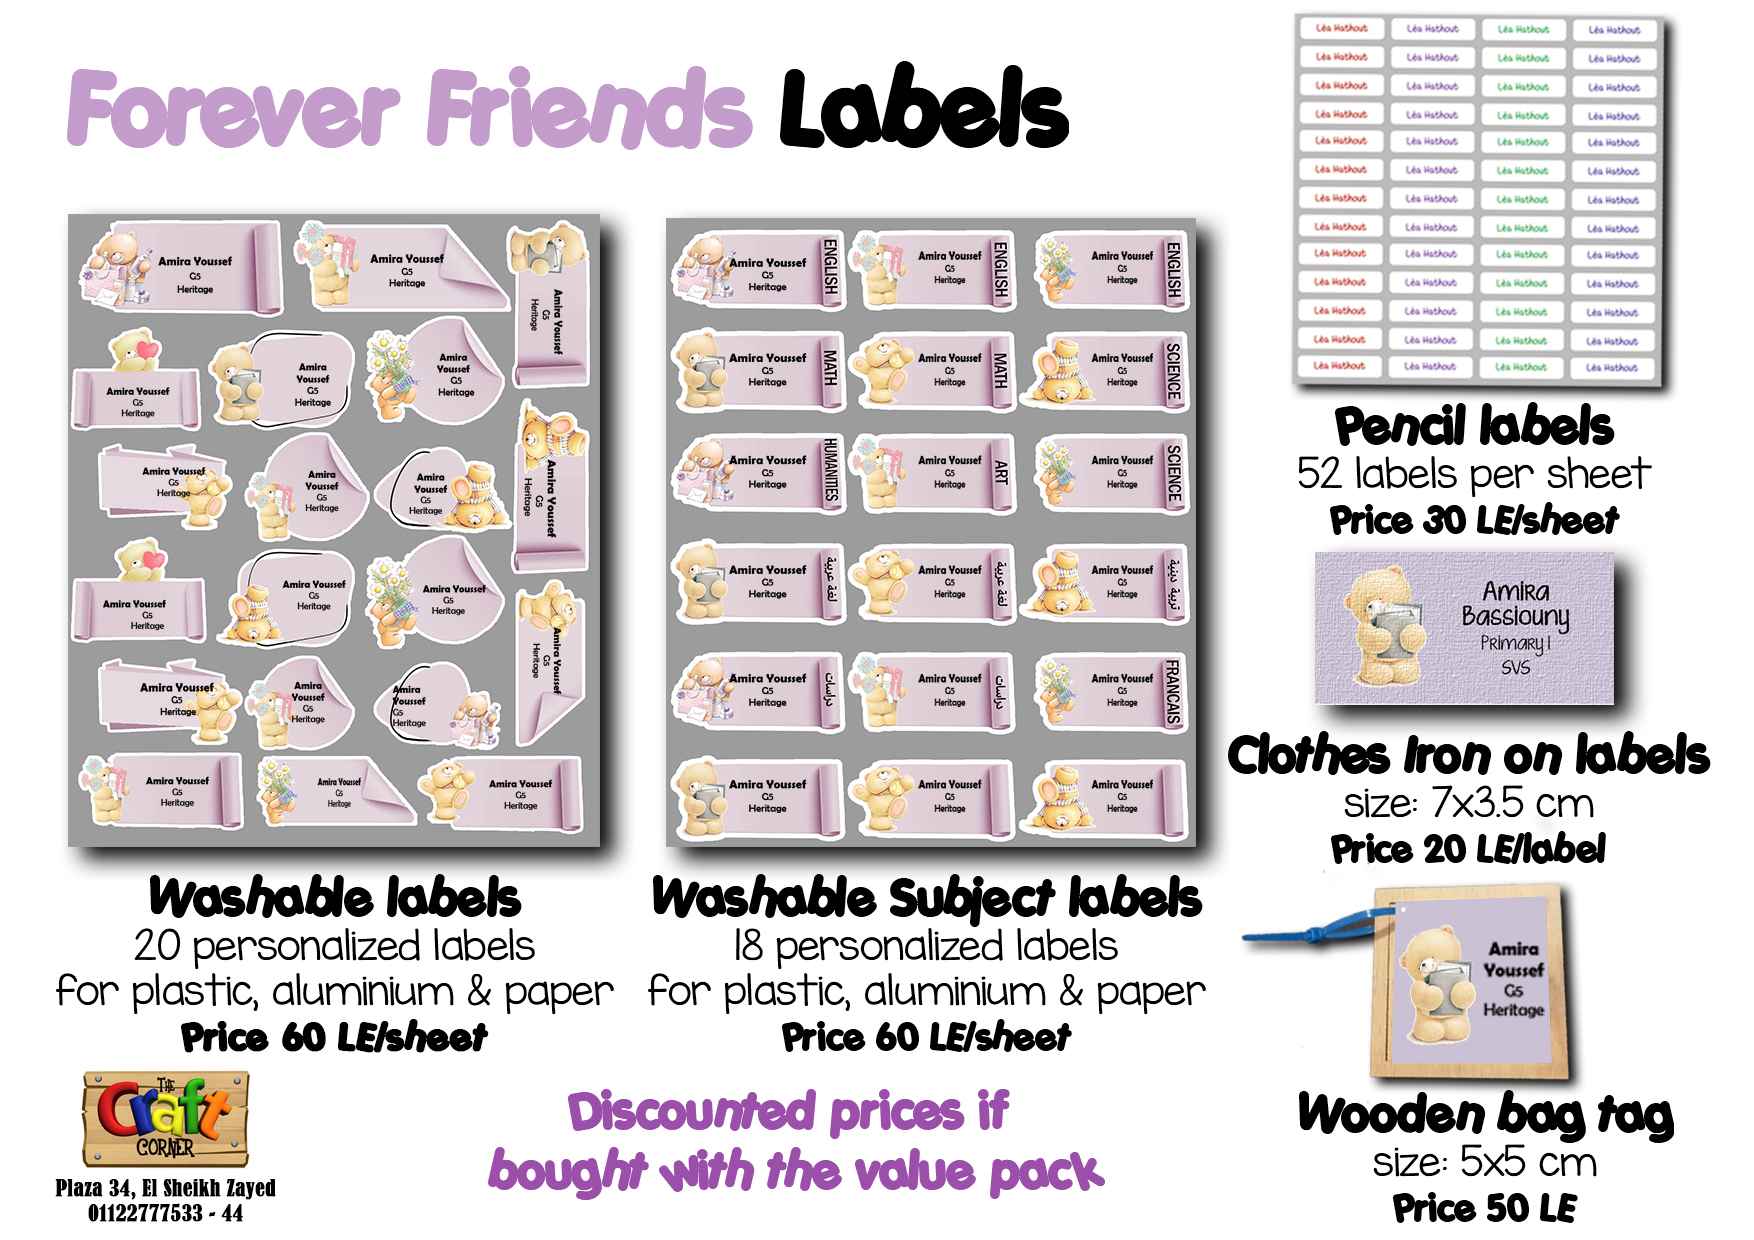 forever friends Labels